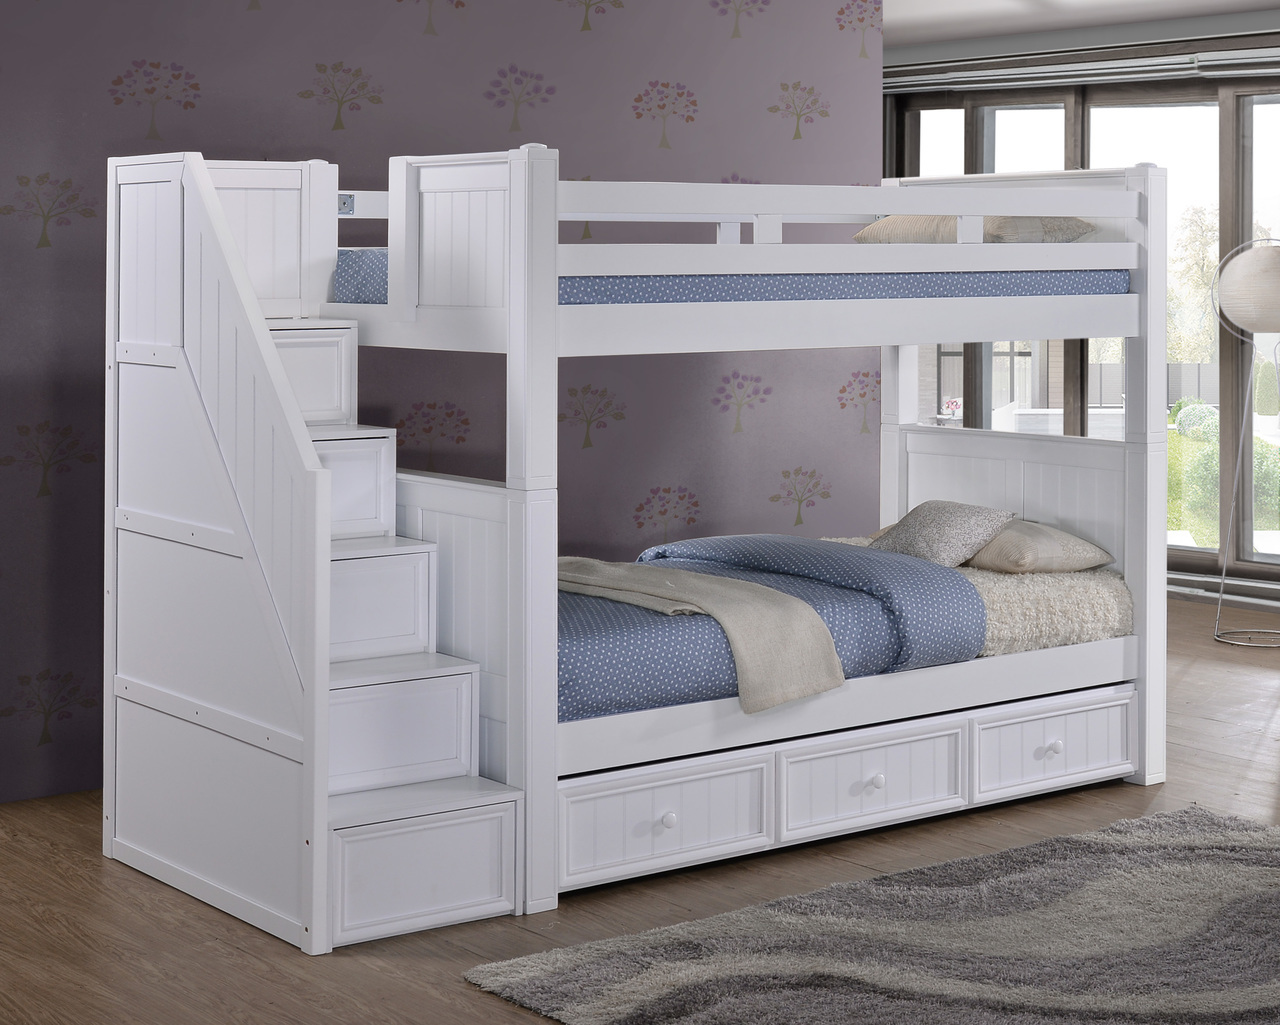 wooden bunk beds with stairs and drawers dillon white twin bunk bed with storage stairs | dillon HIJMXYB